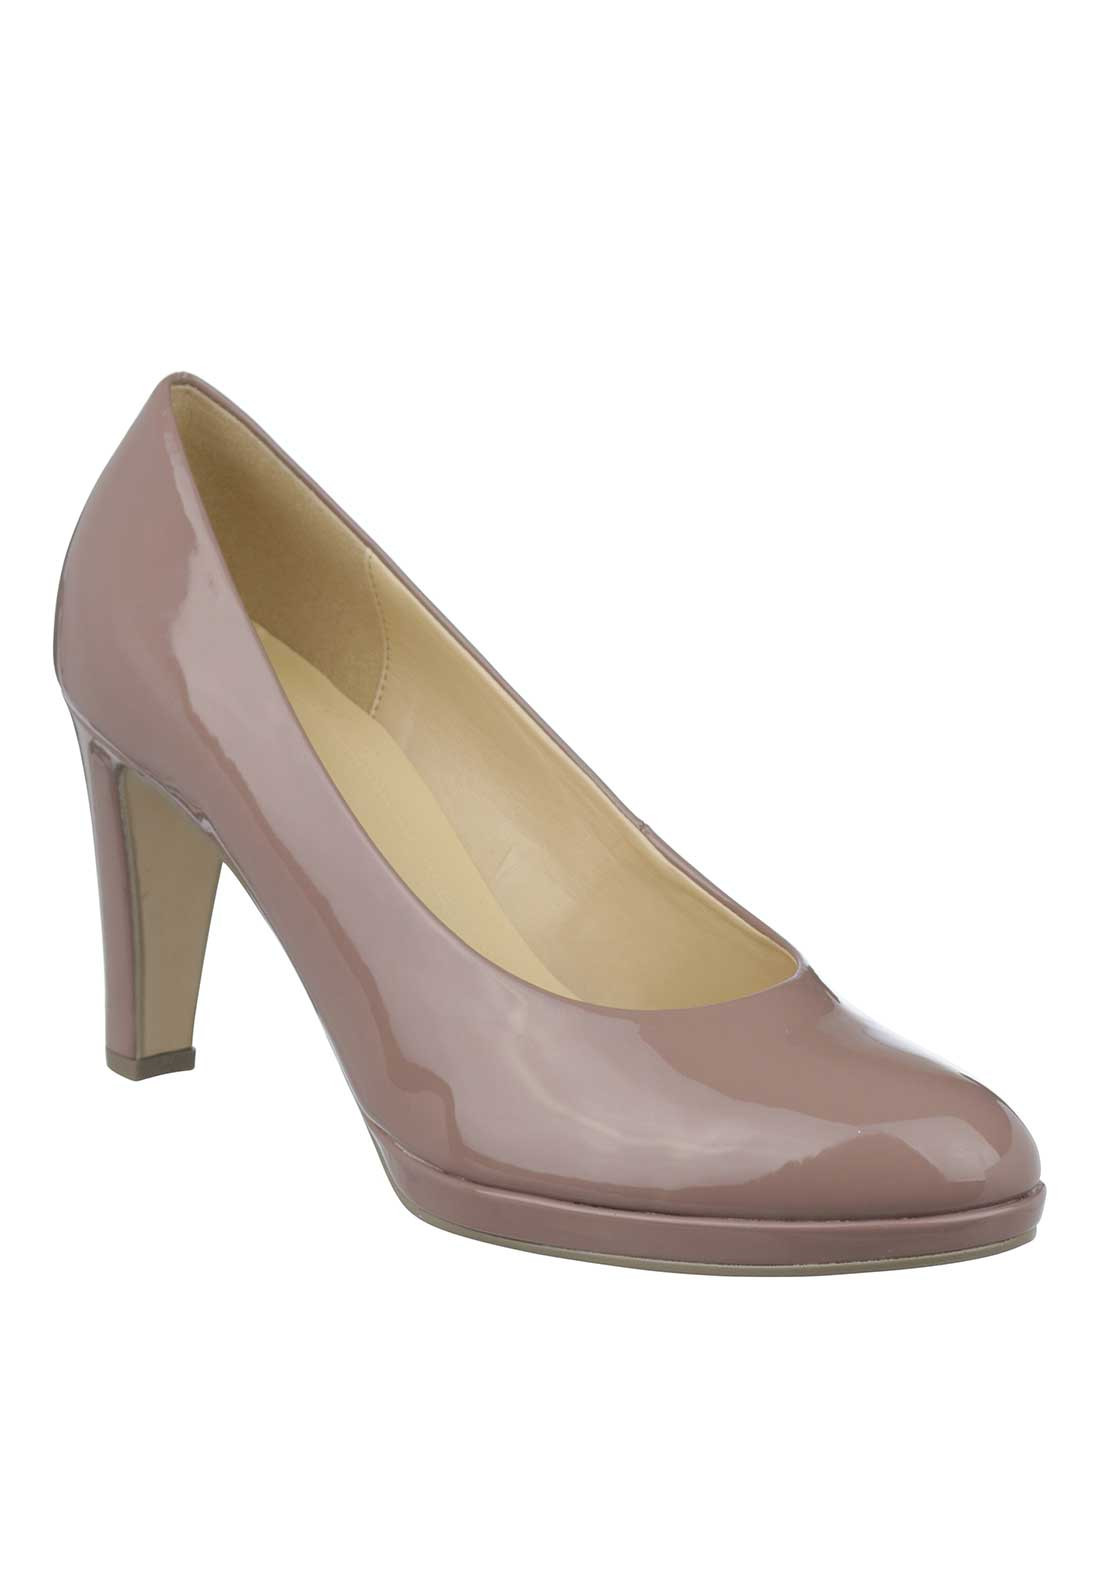 Gabor Patent Block Heeled Court Shoes, Taupe